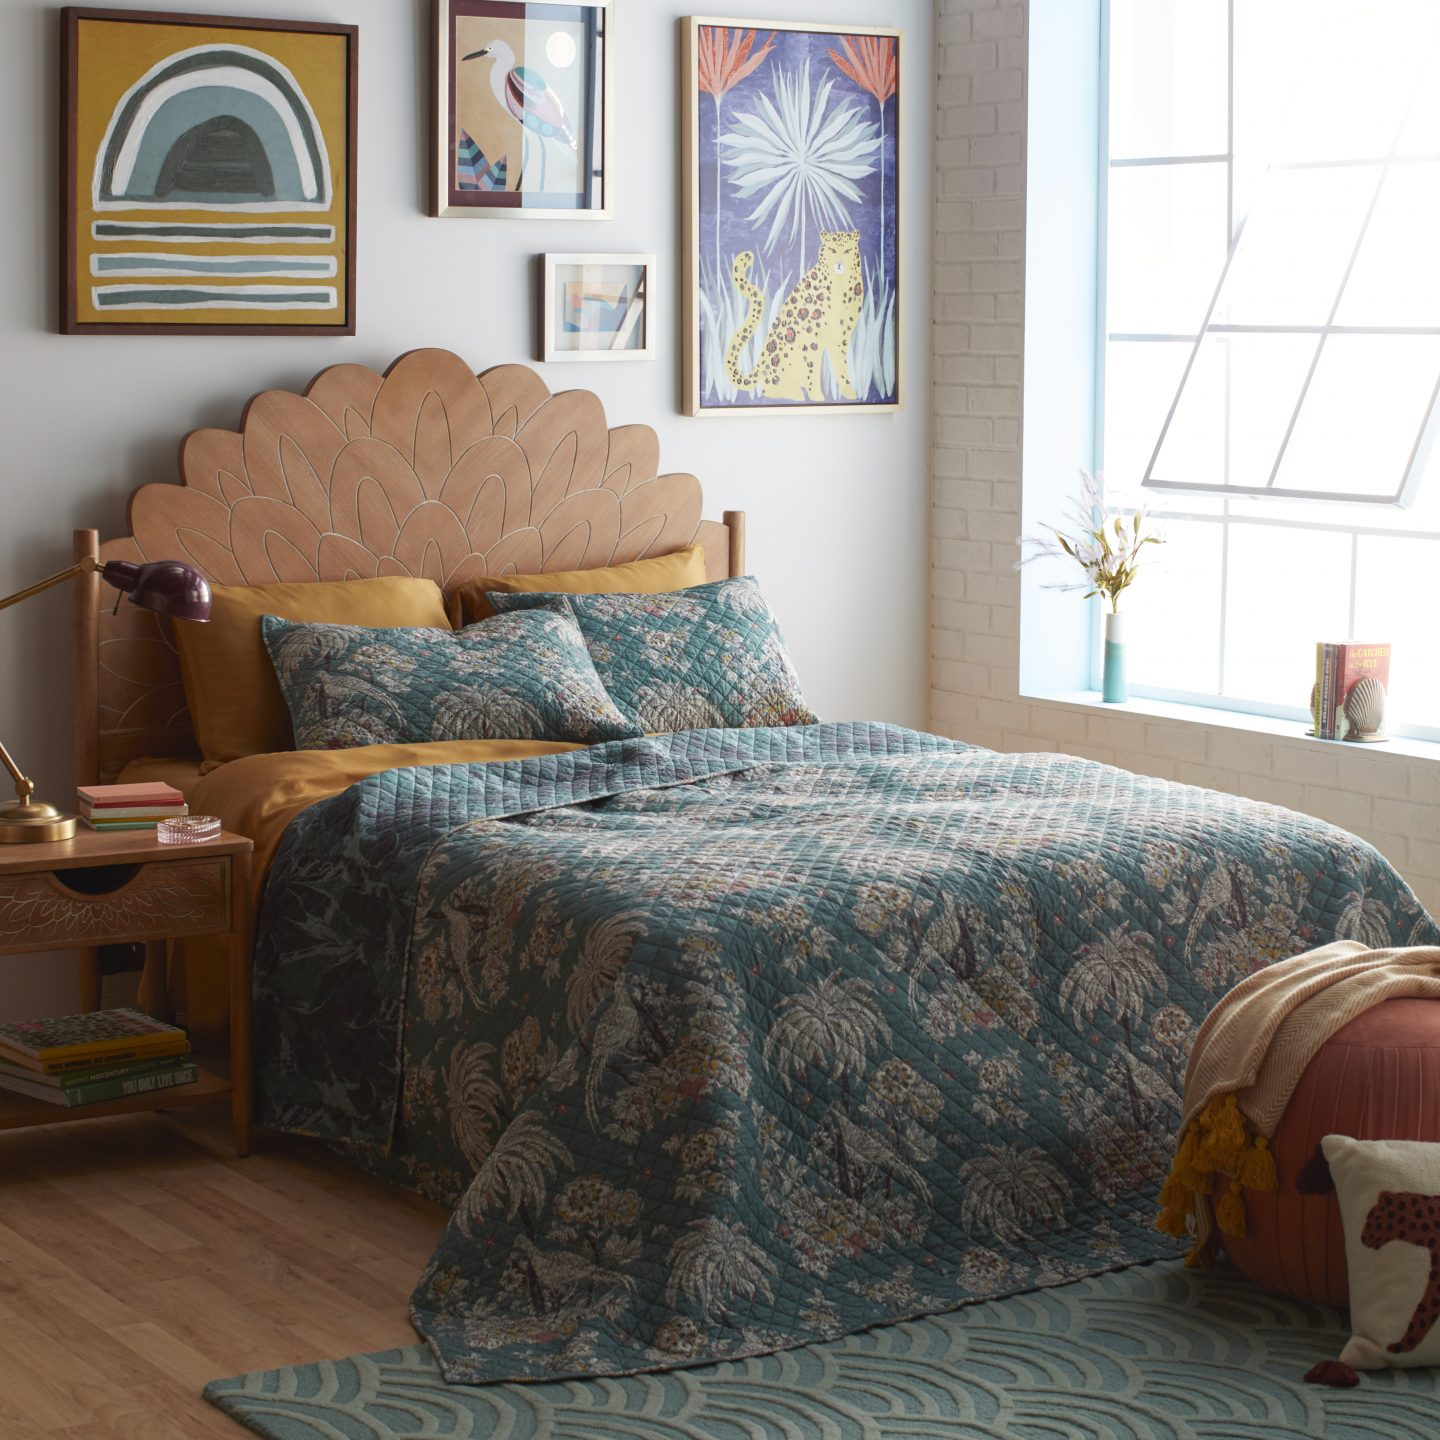 Affordable stores like Anthropologie home: Drew Barrymore Flower Home